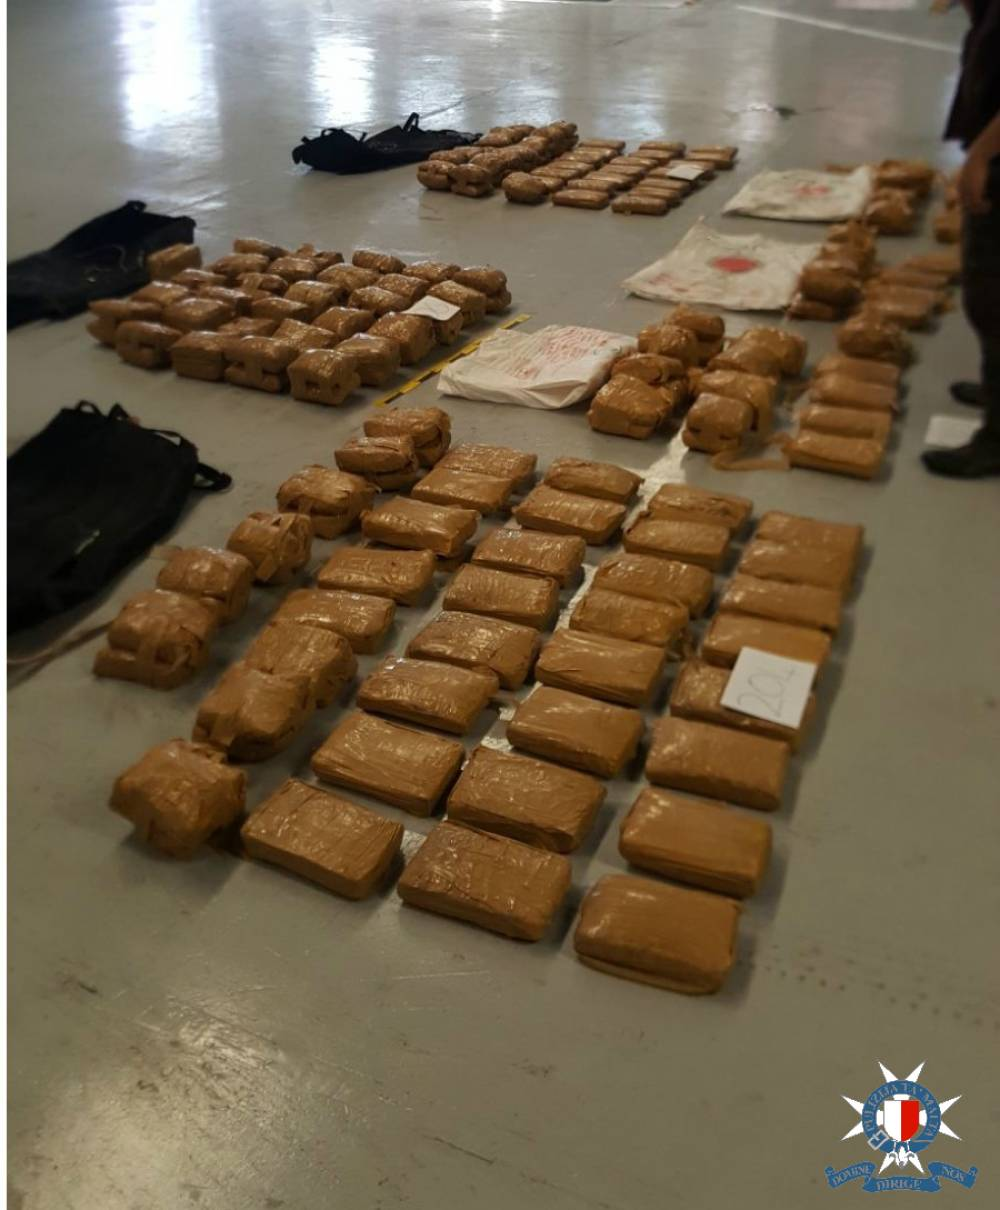 Malta police find 150kg of cannabis in merchant ship drug haul